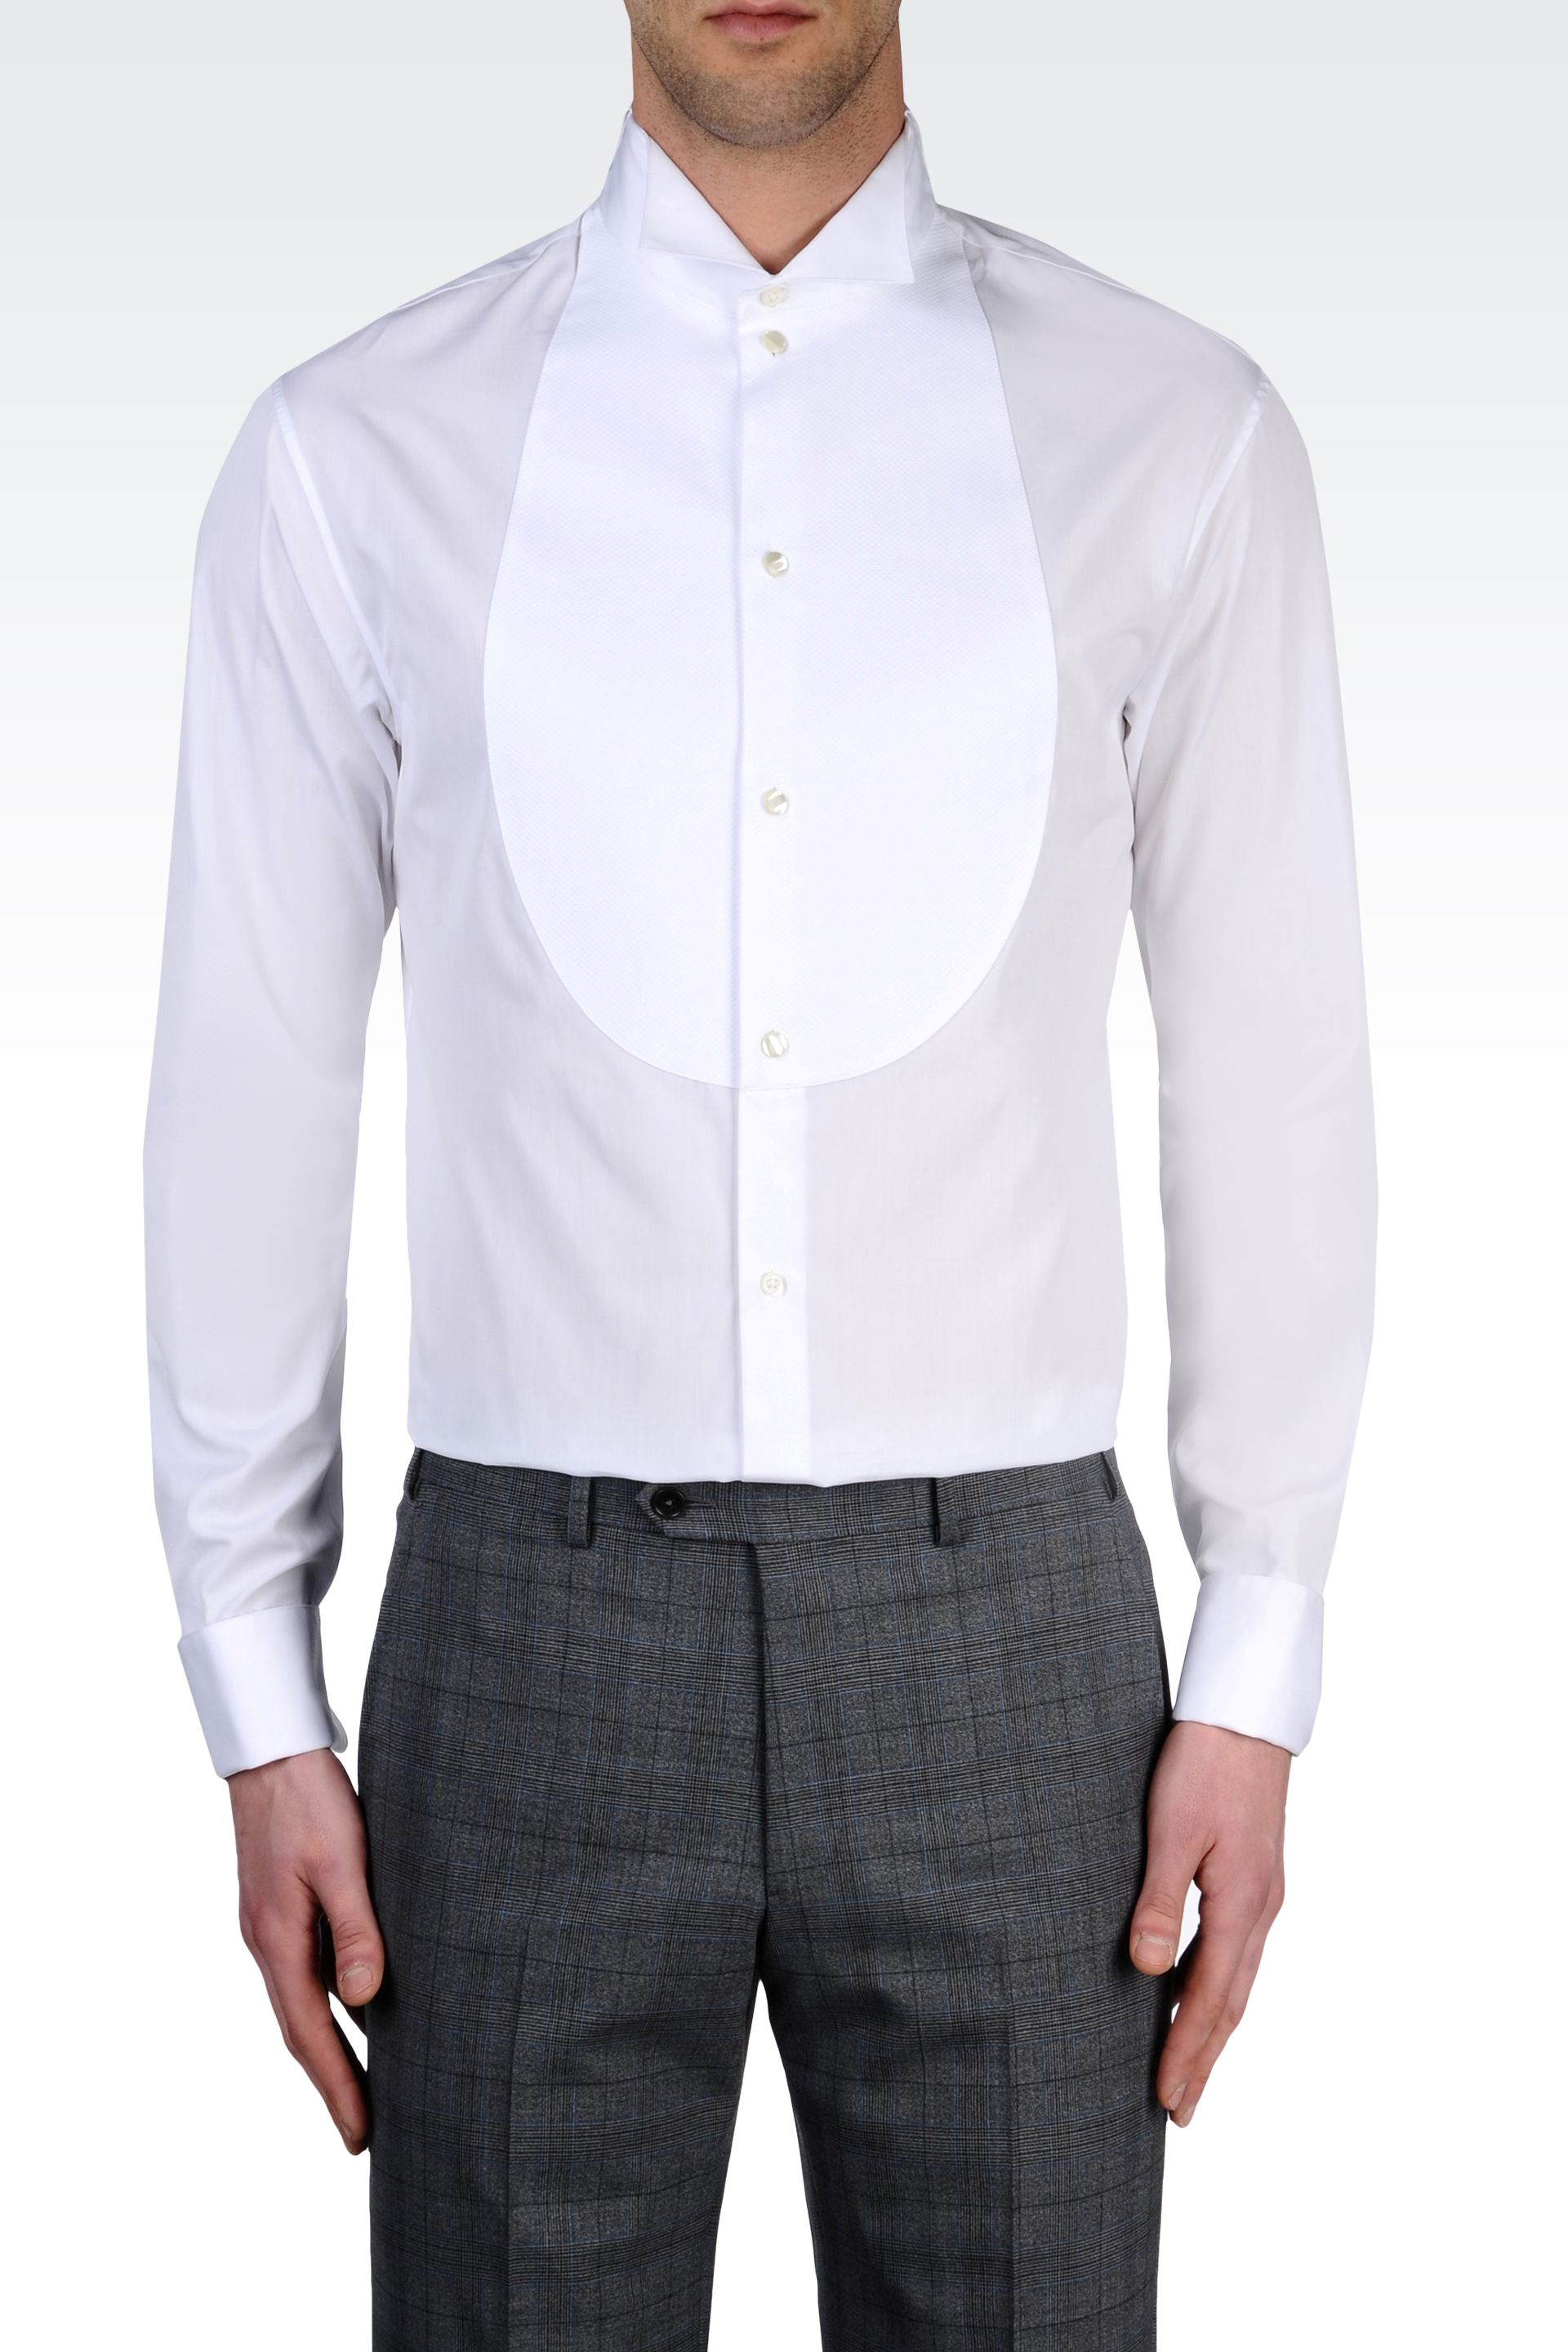 Saint Laurent Mens Shirt